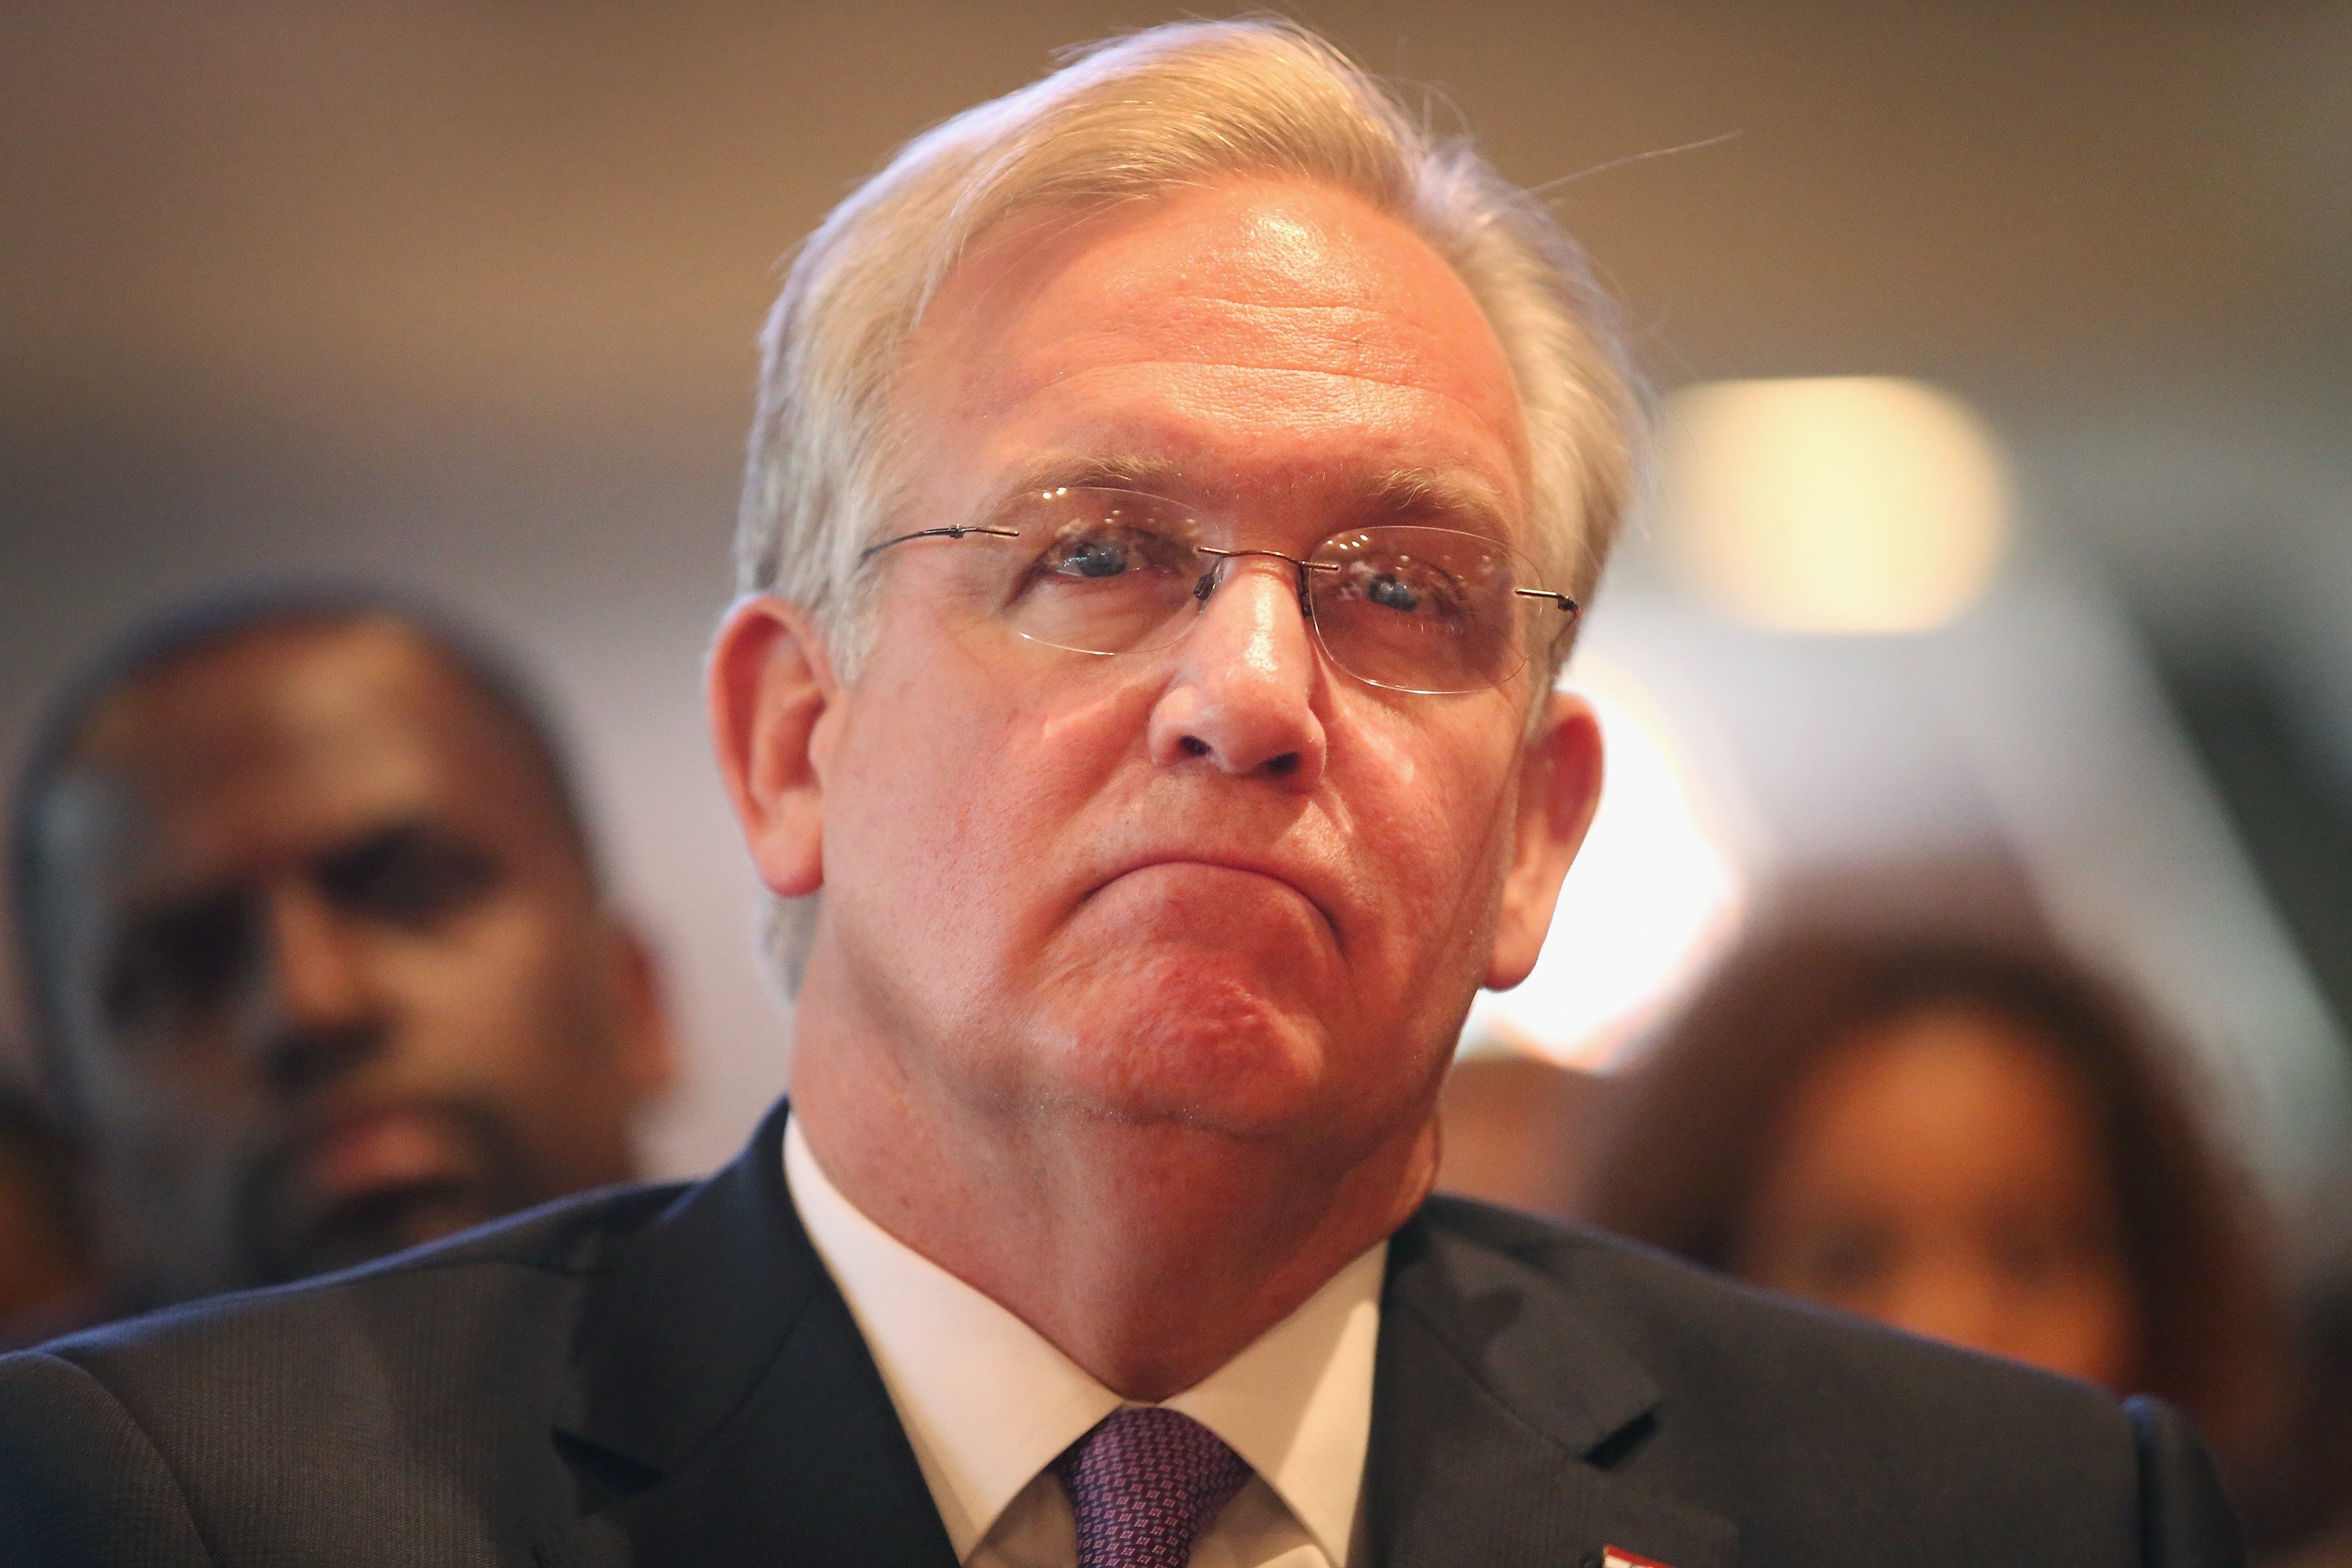 Missouri Governor Jay Nixon listens to residents and community leaders as they discuss unrest in the town of Ferguson following the shooting death of Michael Brown during a forum held at Christ the King UCC Church on August 14, 2014 in Florissant, Mo.